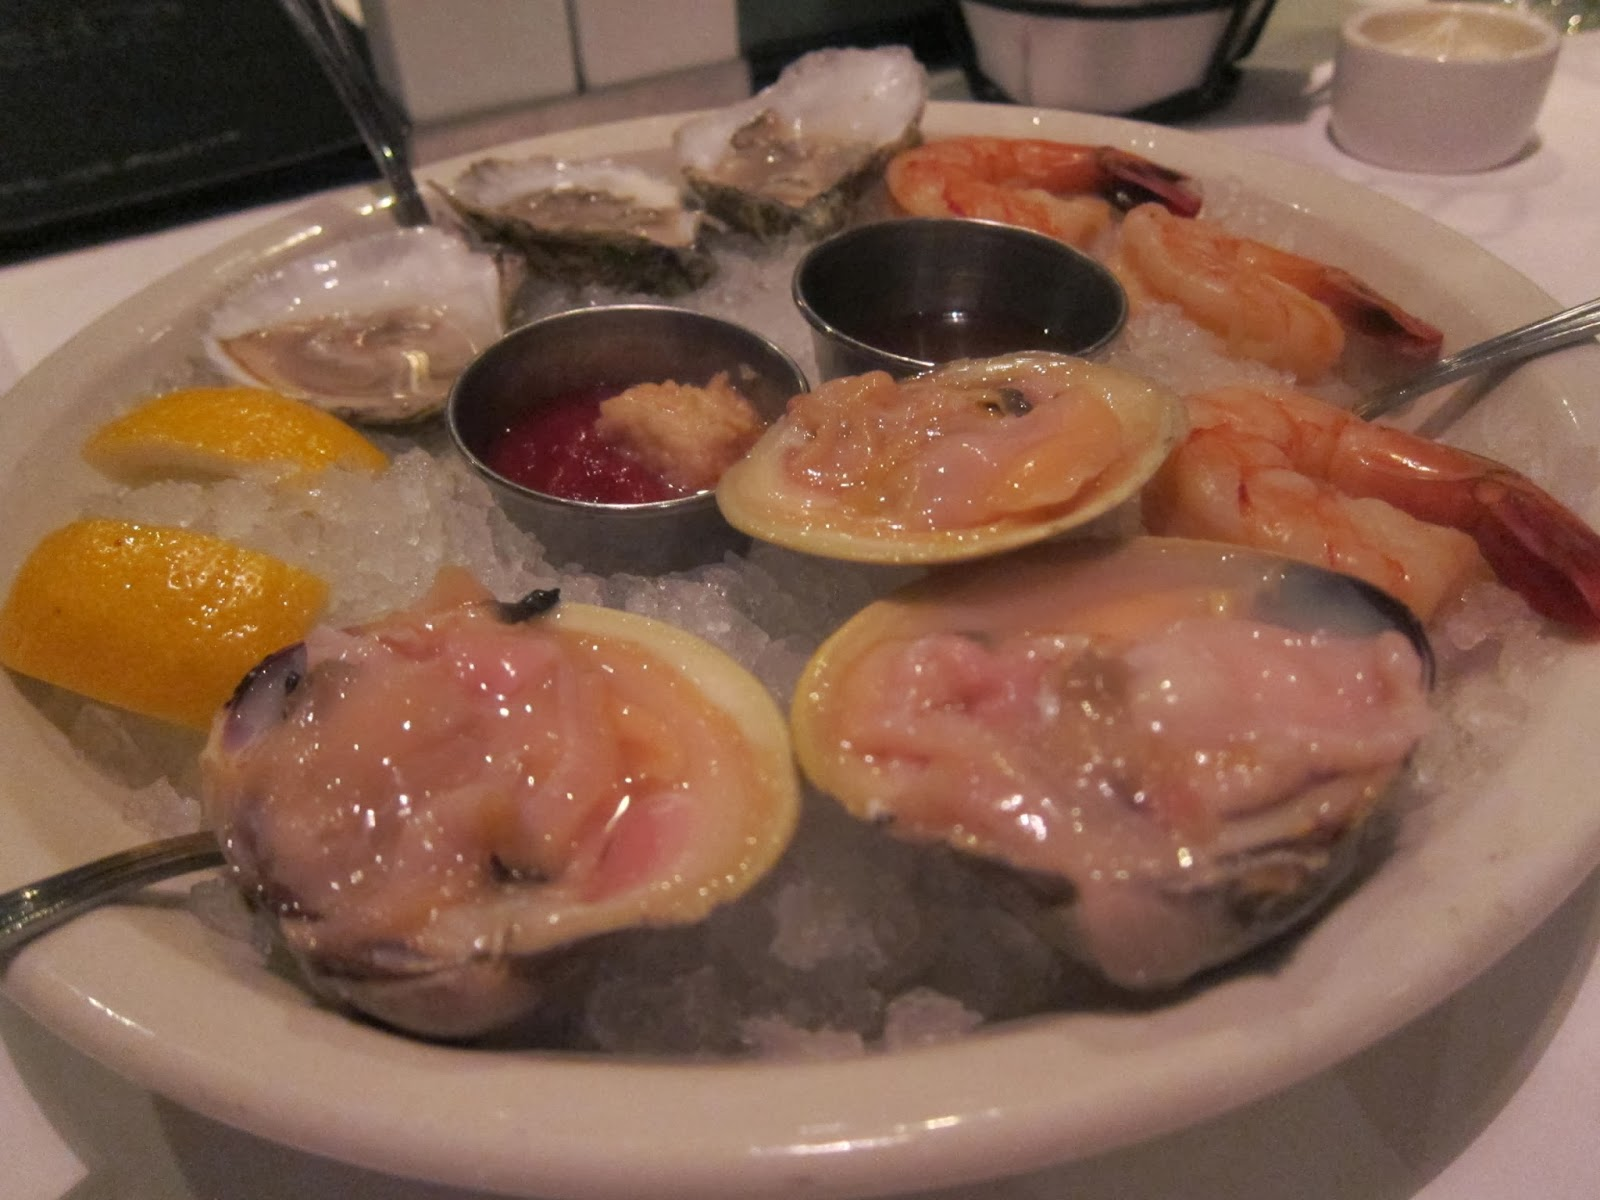 Shellfish Sampler at FISH Restaurant in Marlborough, MA | The Economical Eater